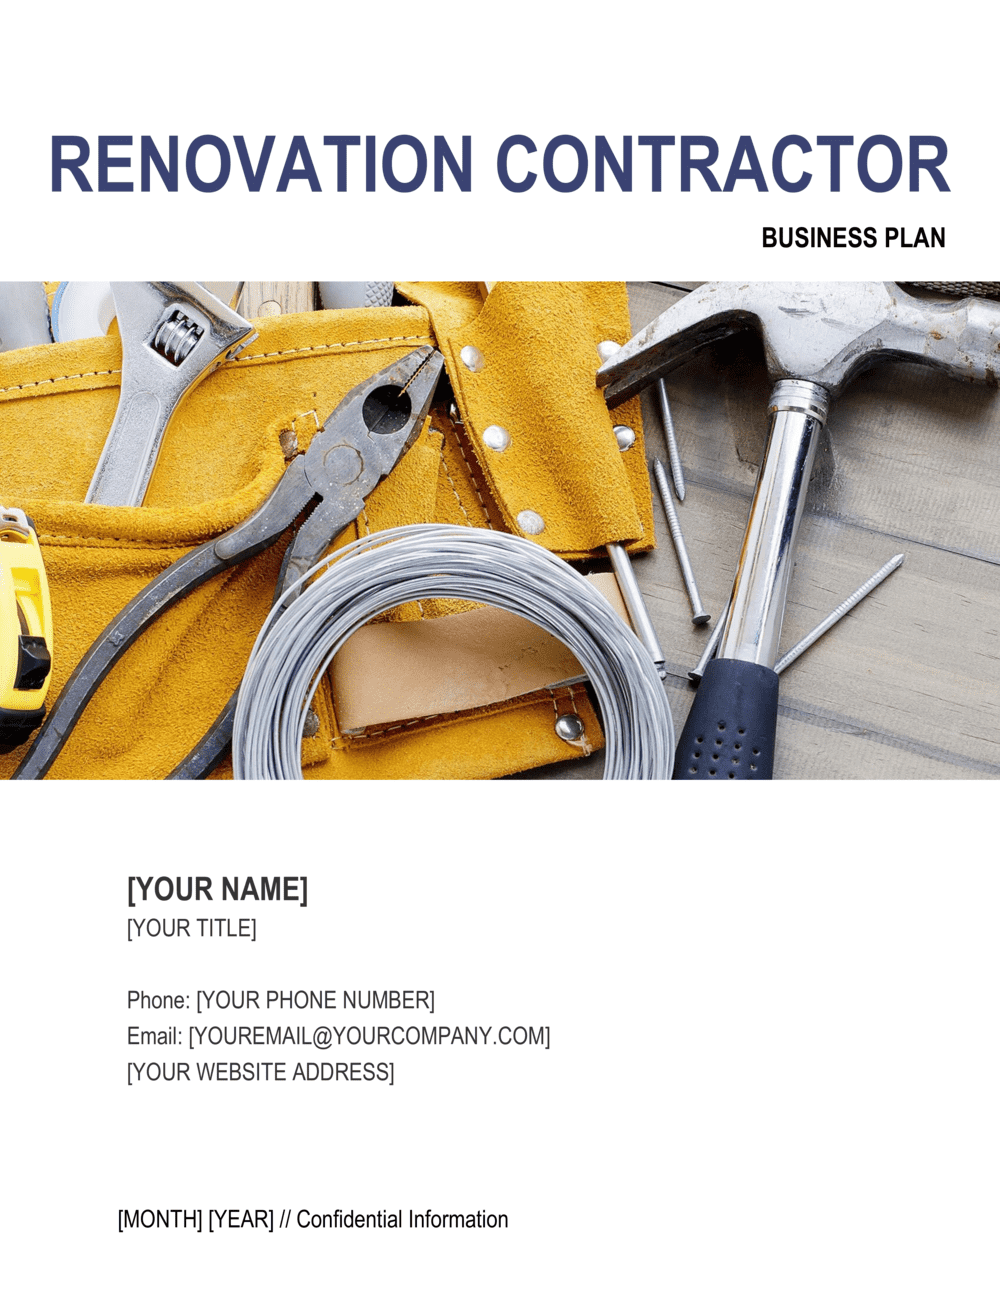 Business-in-a-Box's Renovation Contractor Business Plan Template